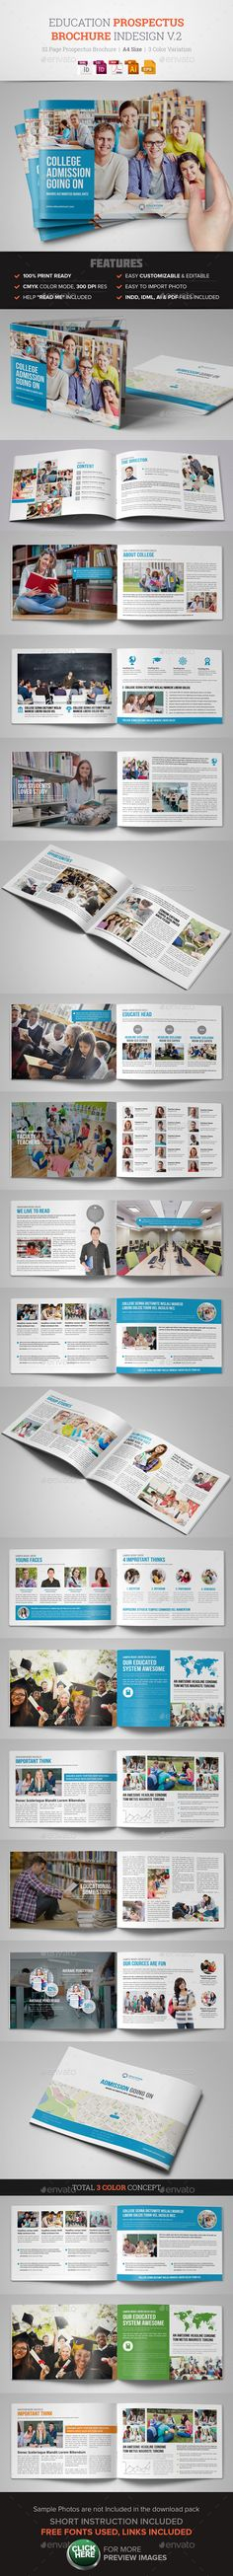 Education Prospectus Brochure Design Template Vector EPS, InDesign INDD, AI Illustrator. Download here: https://graphicriver.net/item/education-prospectus-brochure-design-v2/17161376?ref=ksioks